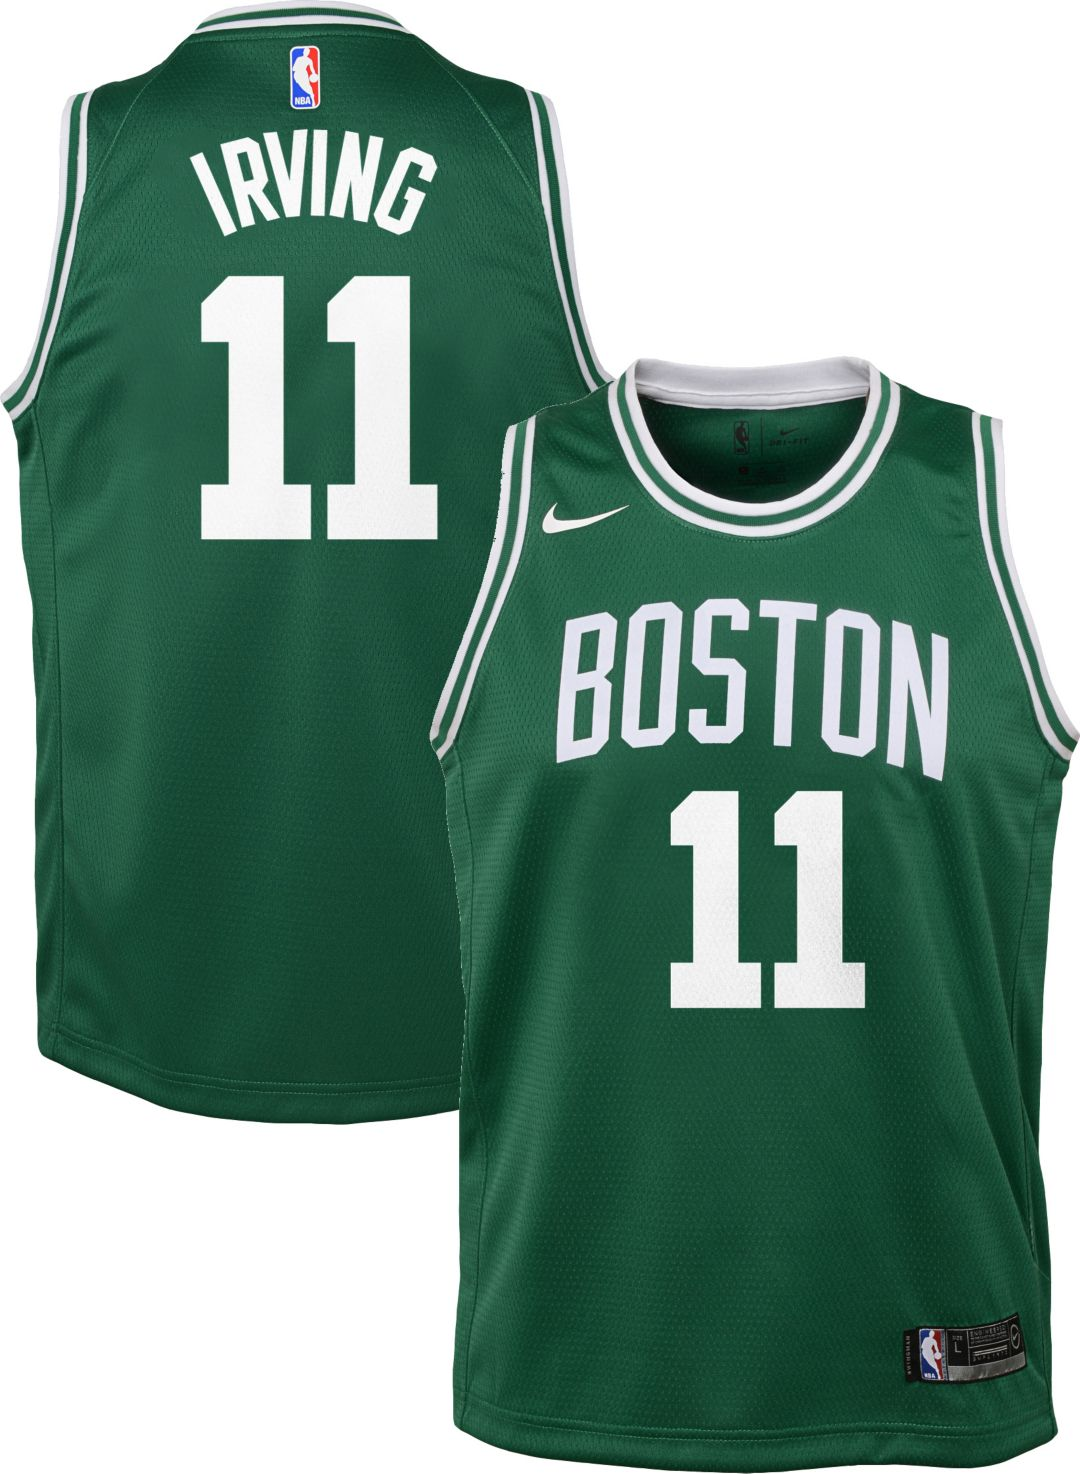 finest selection 561d8 612a2 Nike Youth Boston Celtics Kyrie Irving #11 Kelly Green Dri-FIT Swingman  Jersey